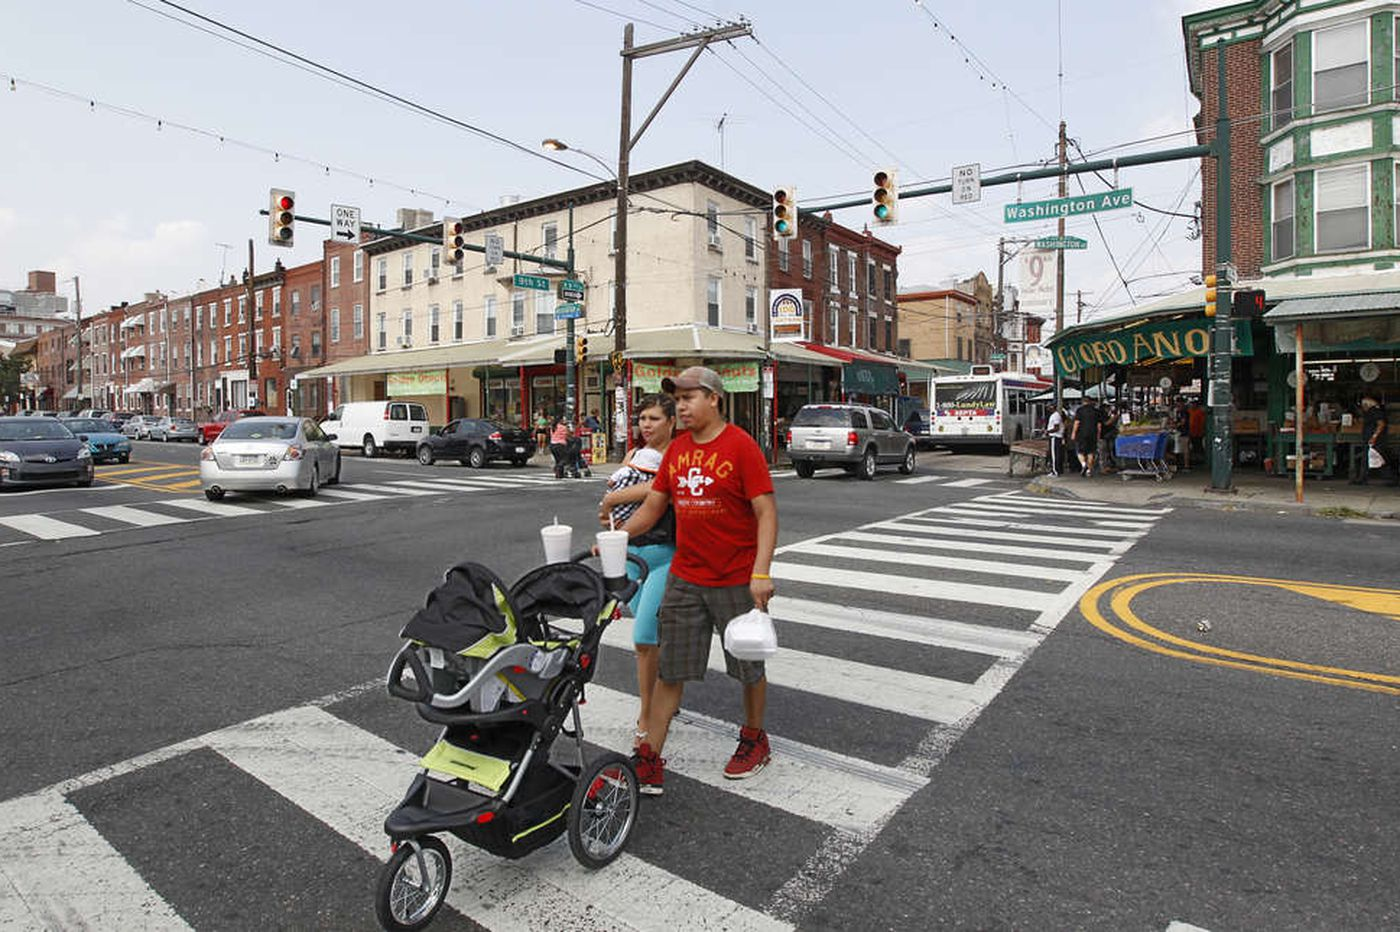 Philly's Washington Avenue is plagued with problems and the city wants your feedback before a repaving next year